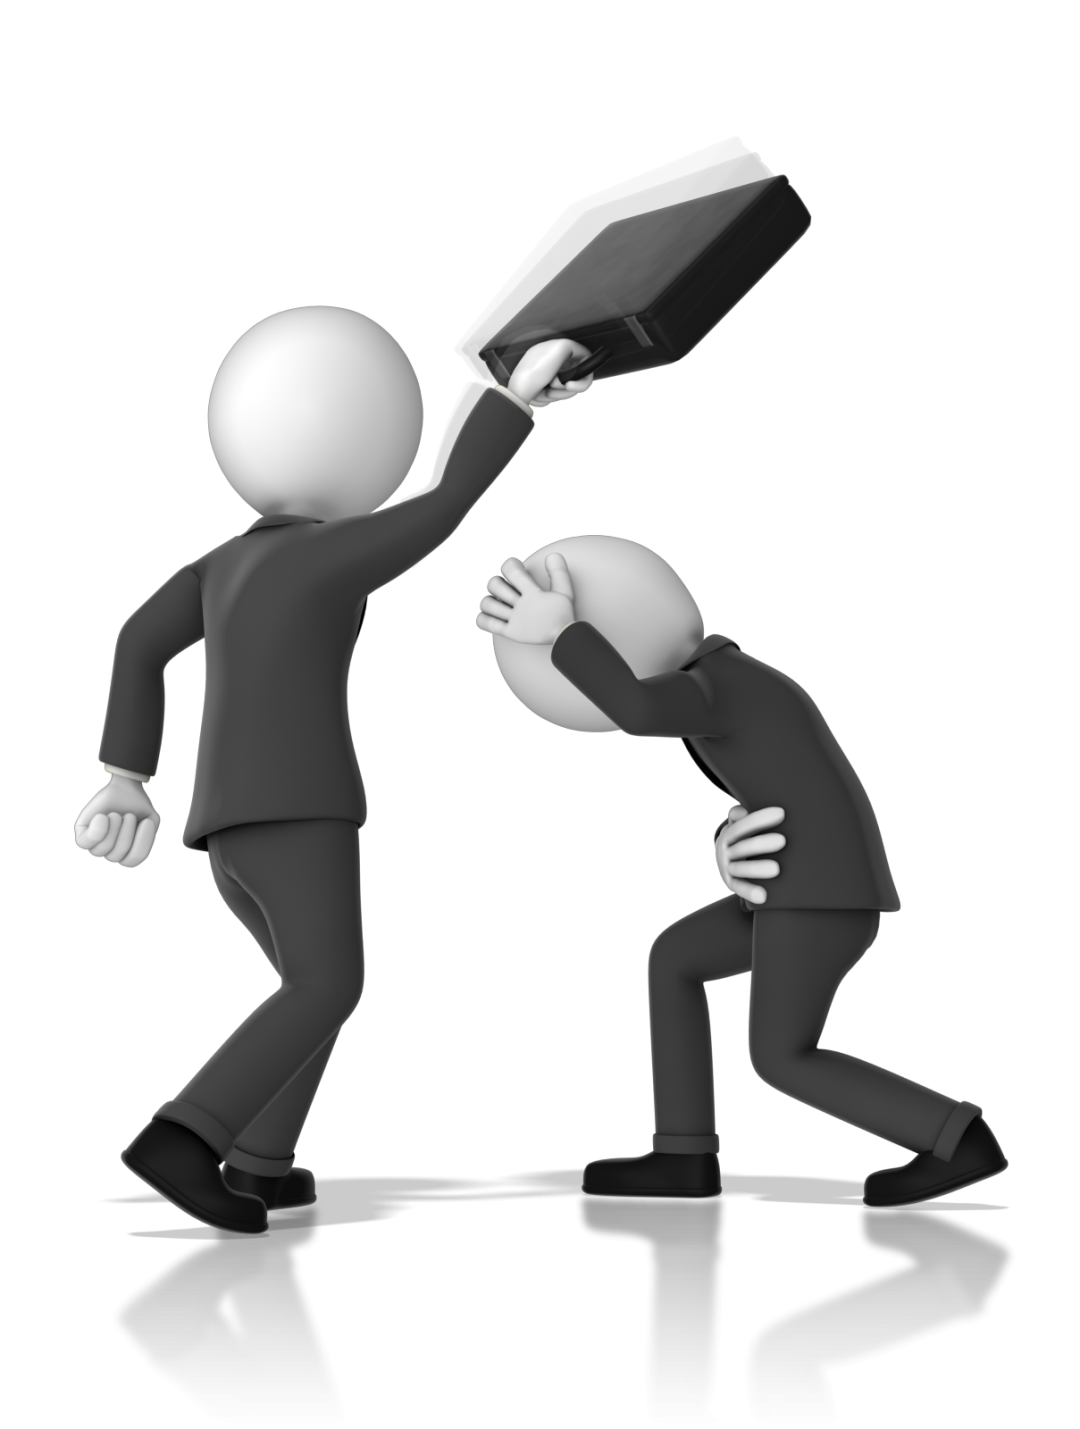 Violence organizational clip art. Conflict clipart workplace conflict